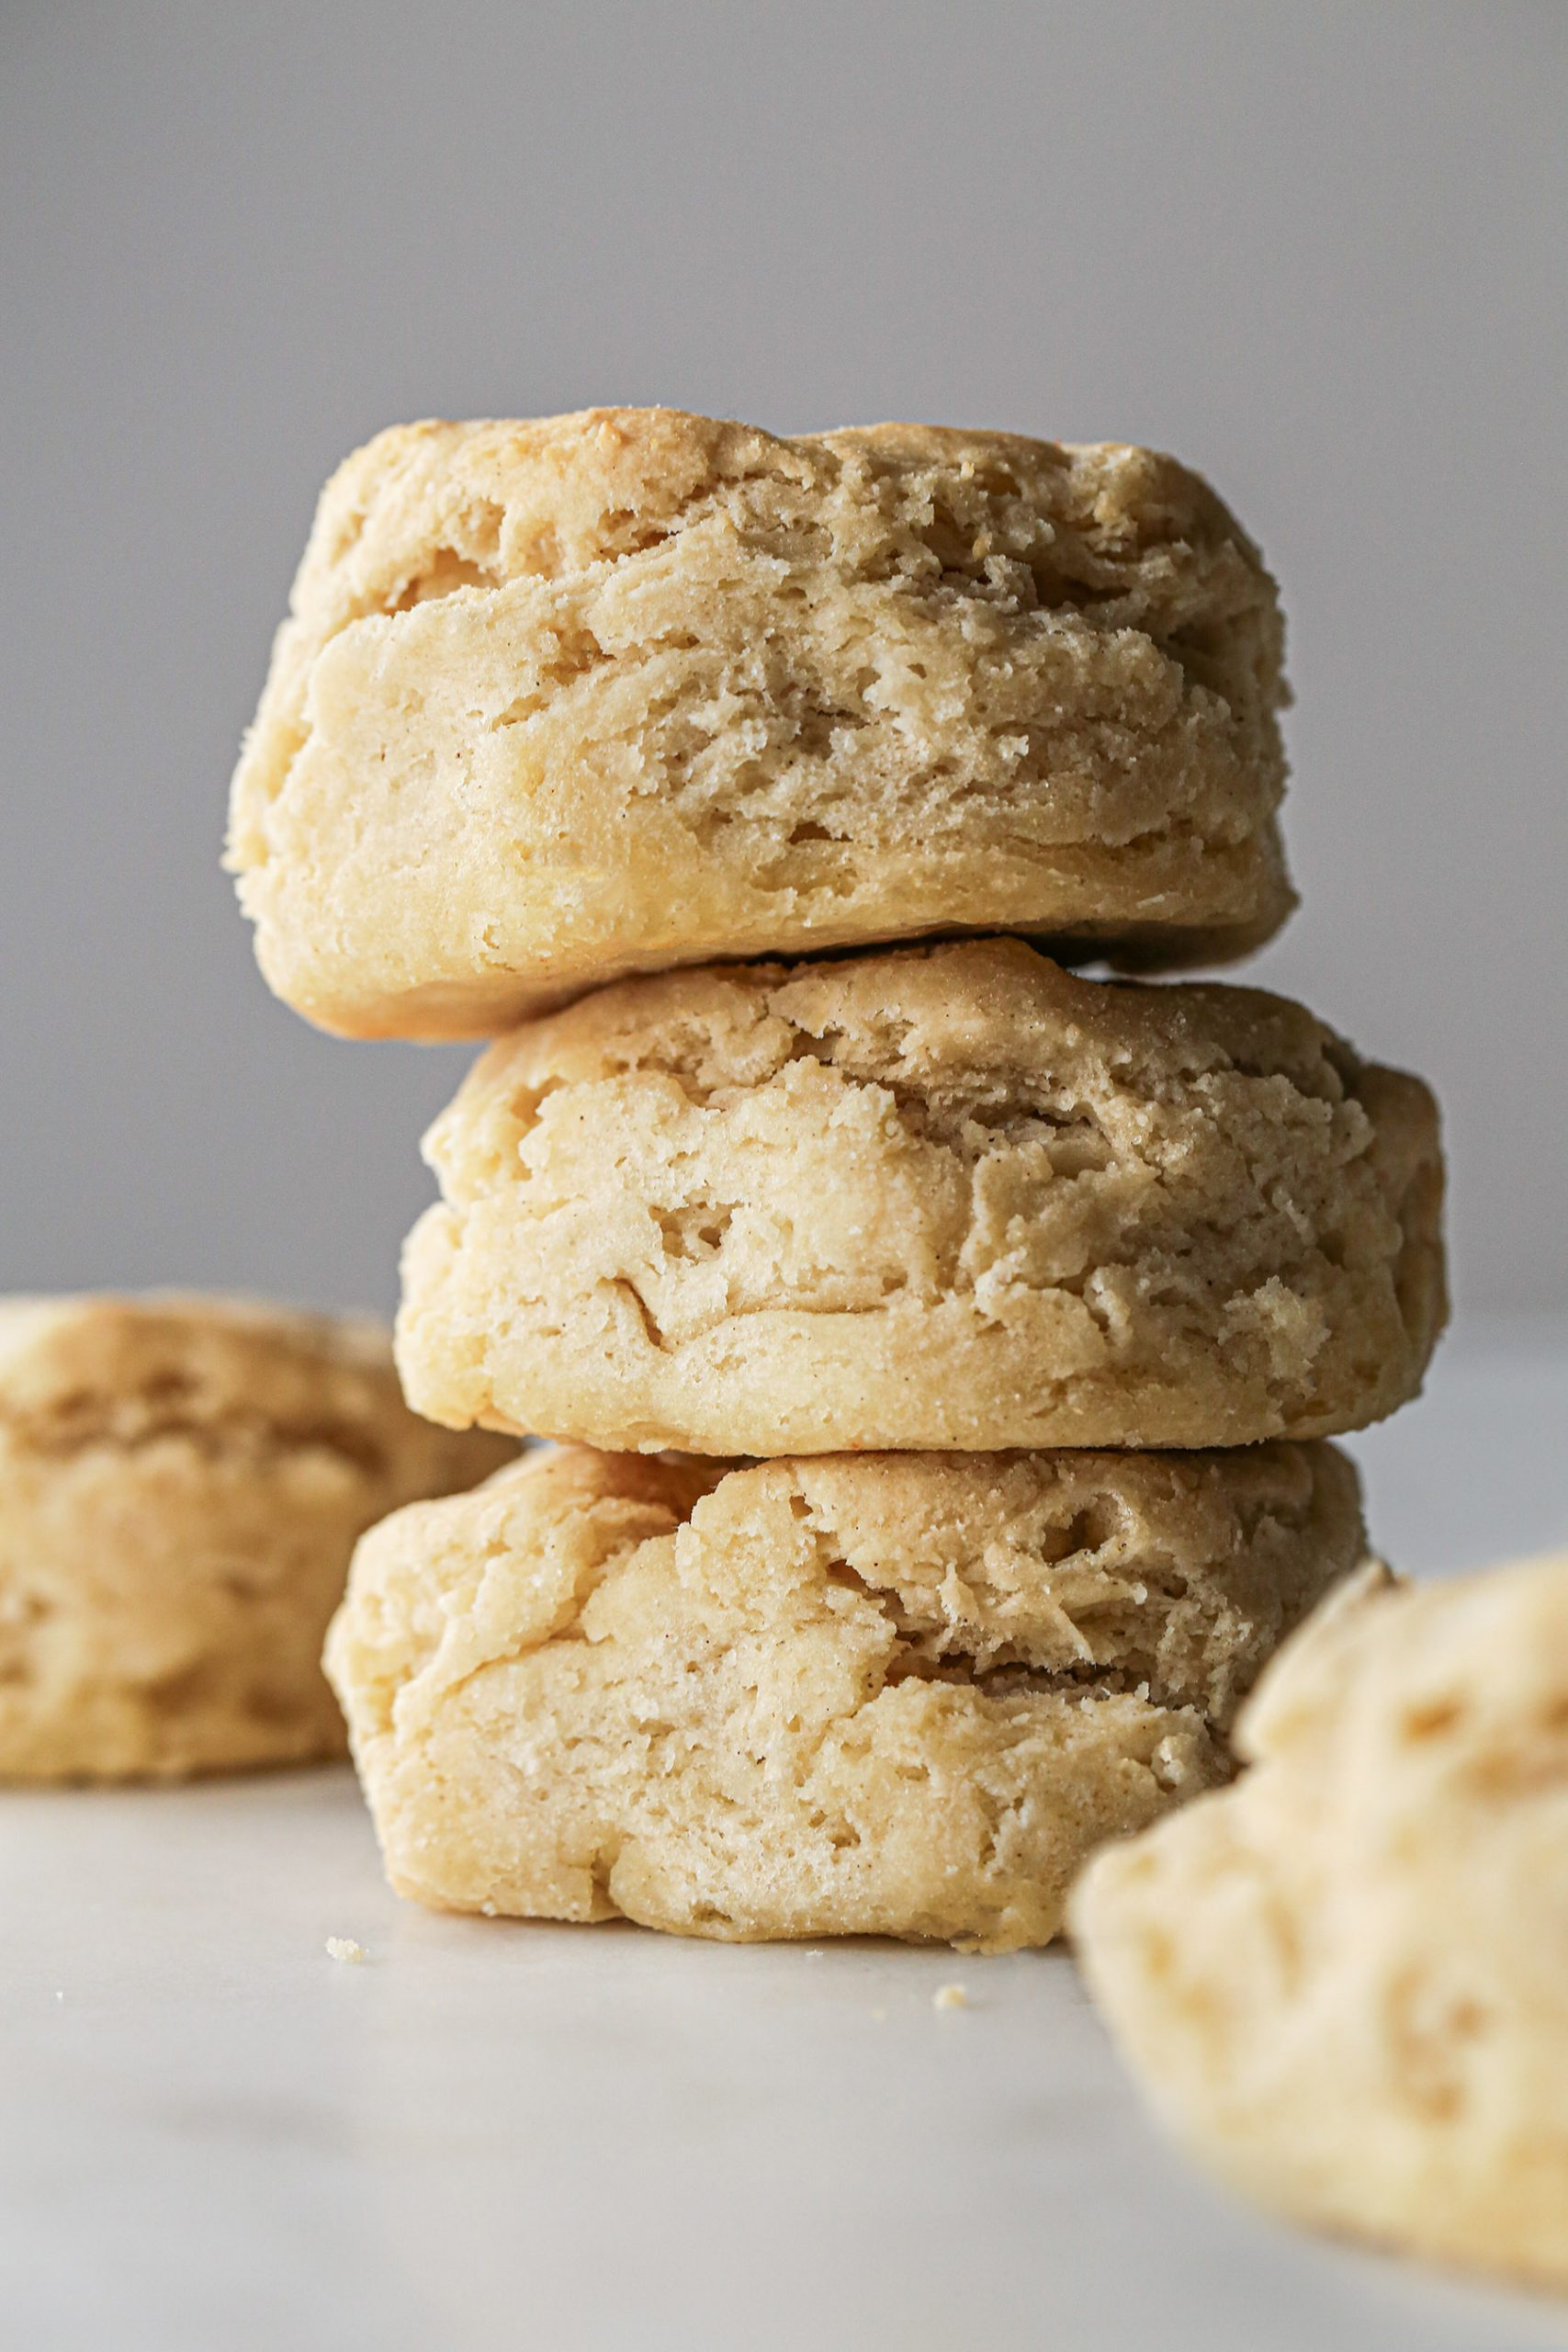 Fluffy Gluten-Free Biscuits | Includes a vegan option.